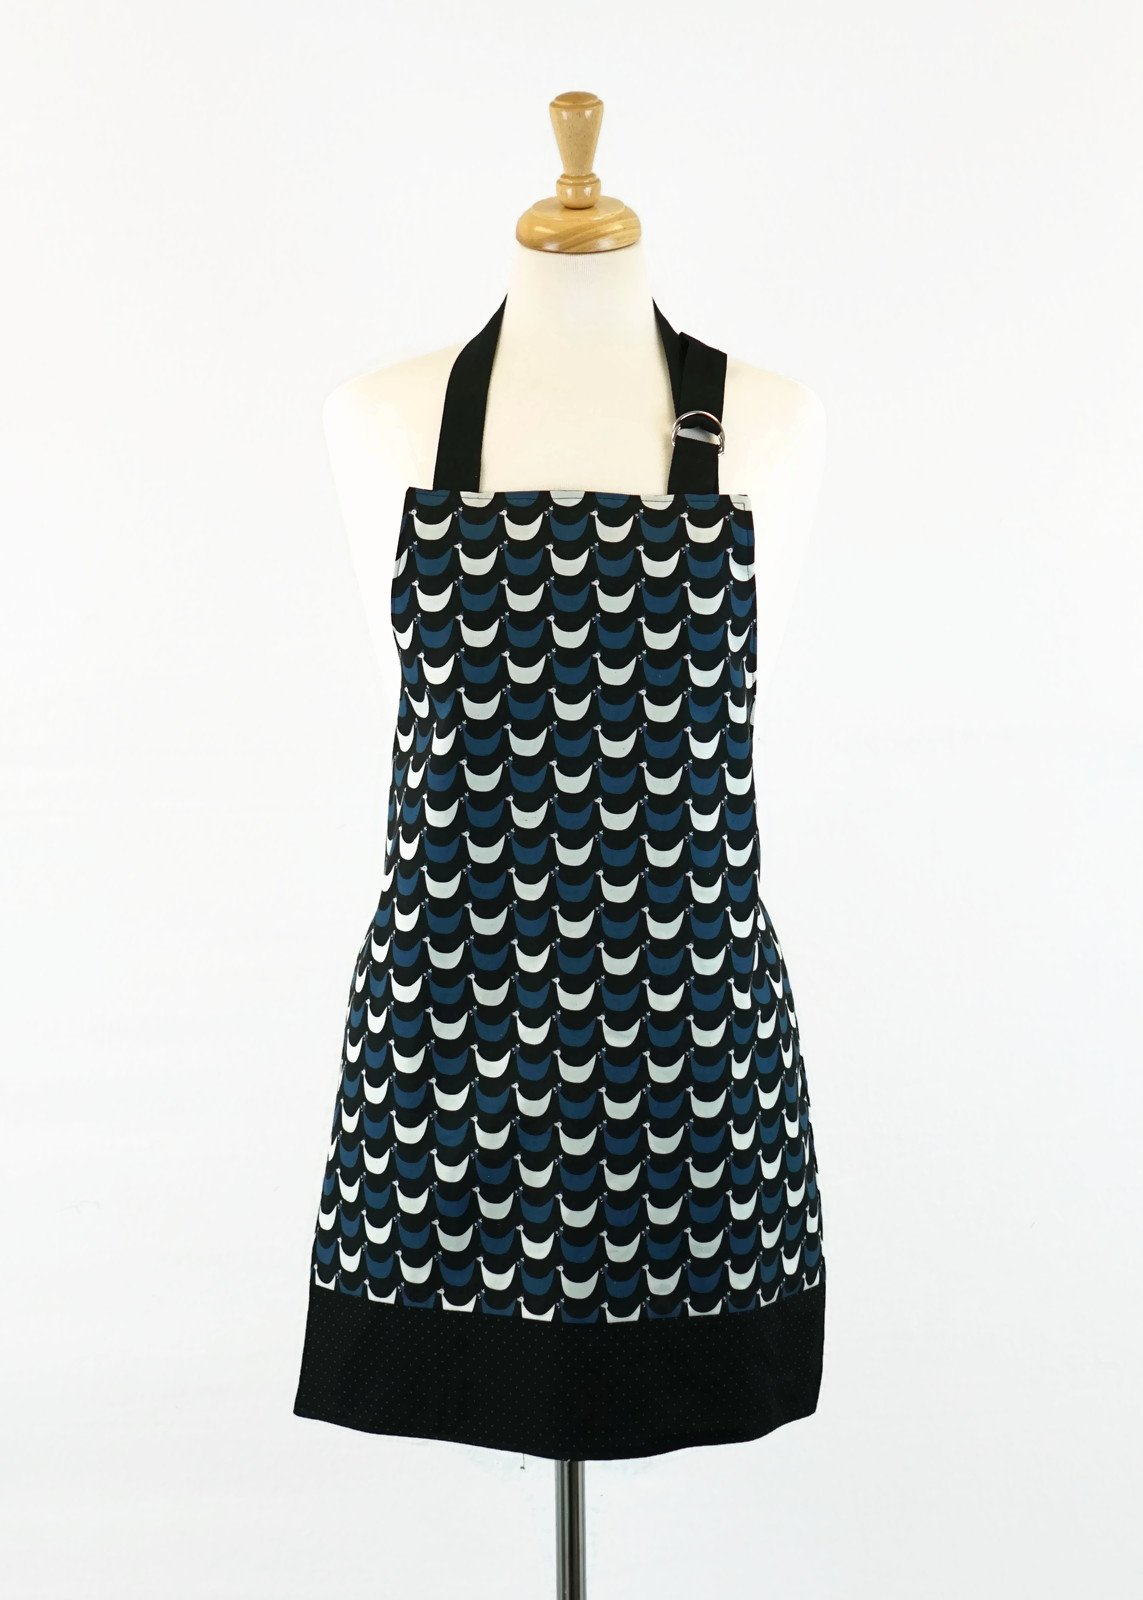 Women's Apron - Chickens in Black